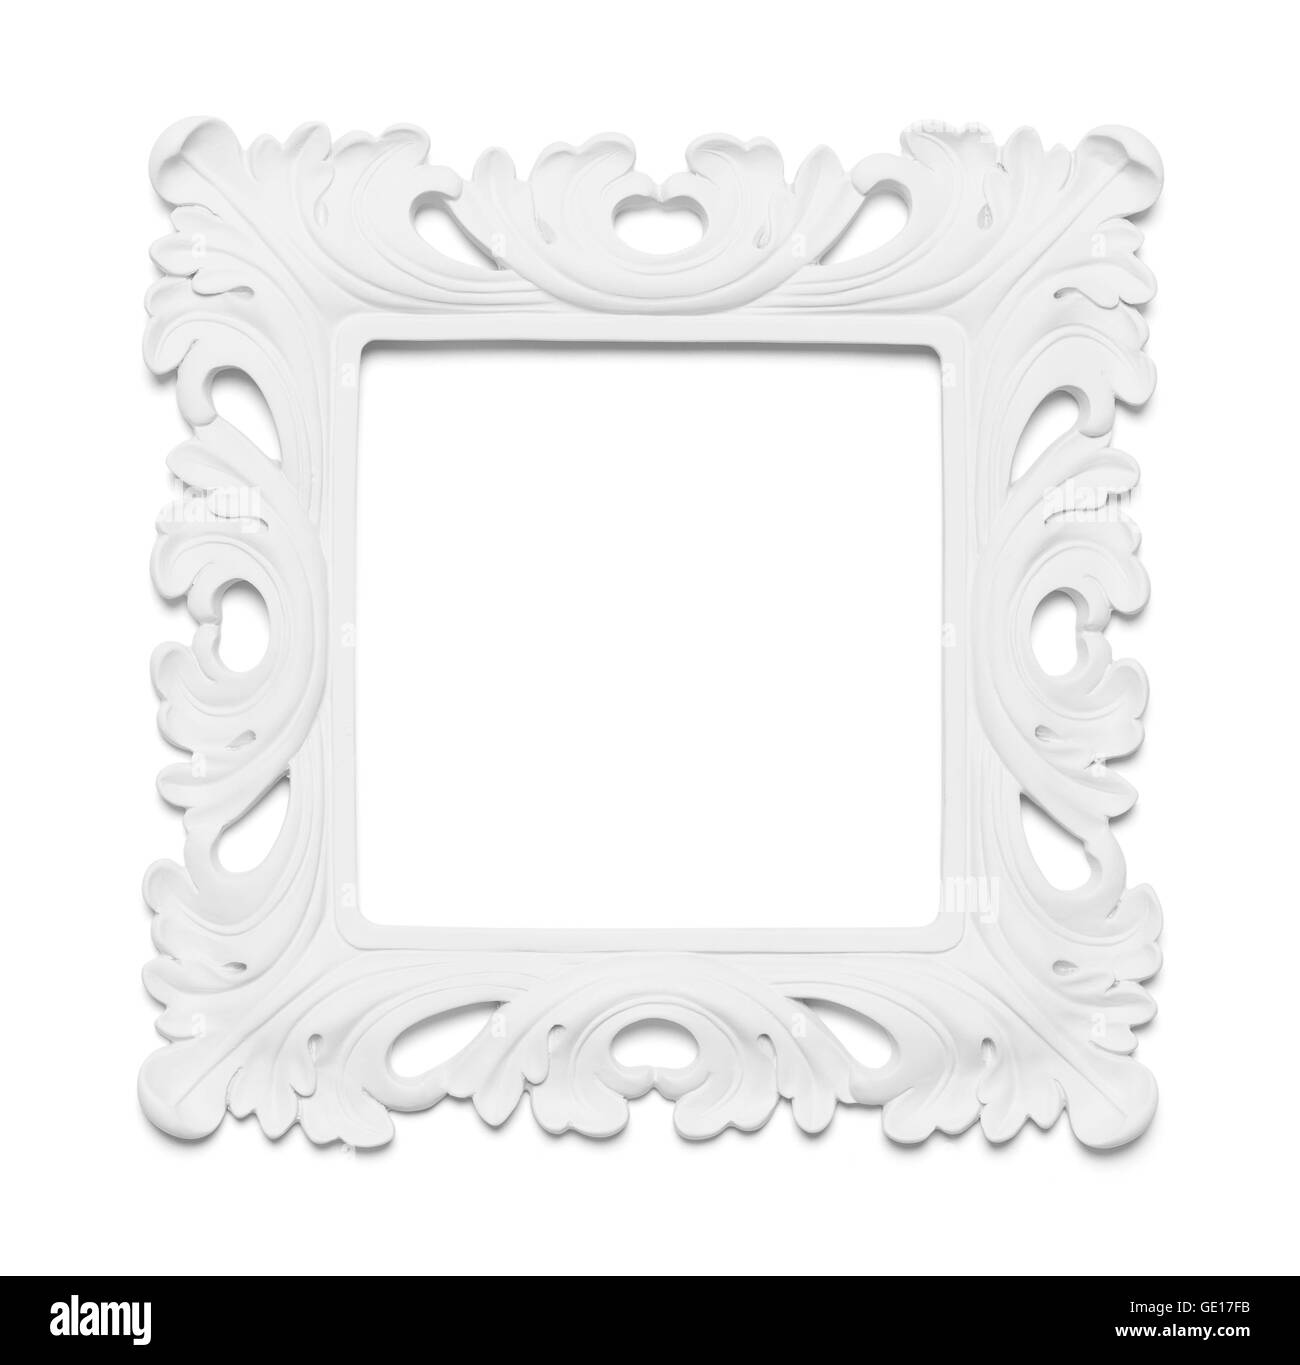 Ornate Picture Frame Stock Photos & Ornate Picture Frame Stock ...